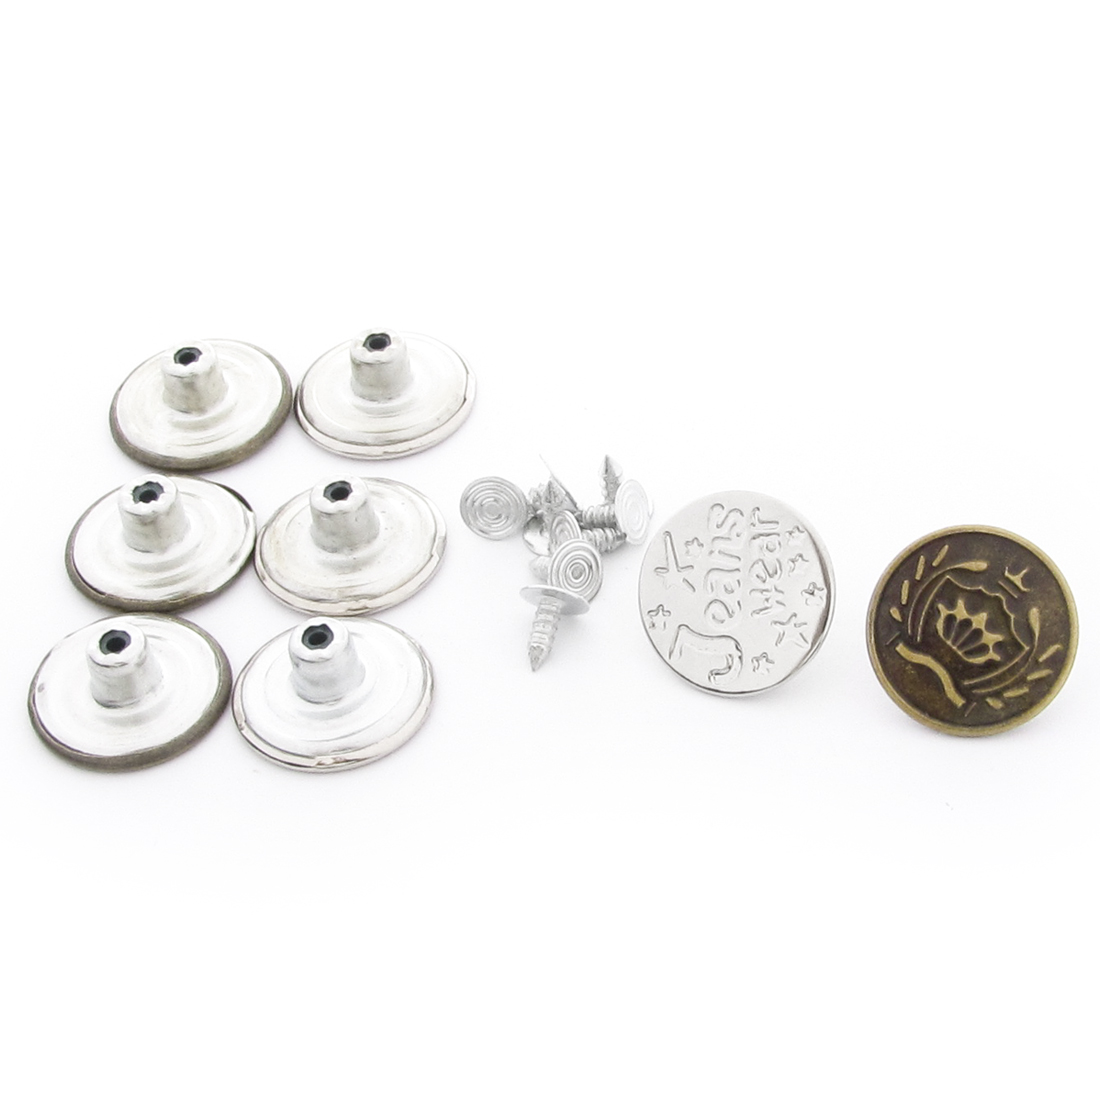 8 Pcs Repair Part Silver Tone Metal Carved Words Jeans Buttons